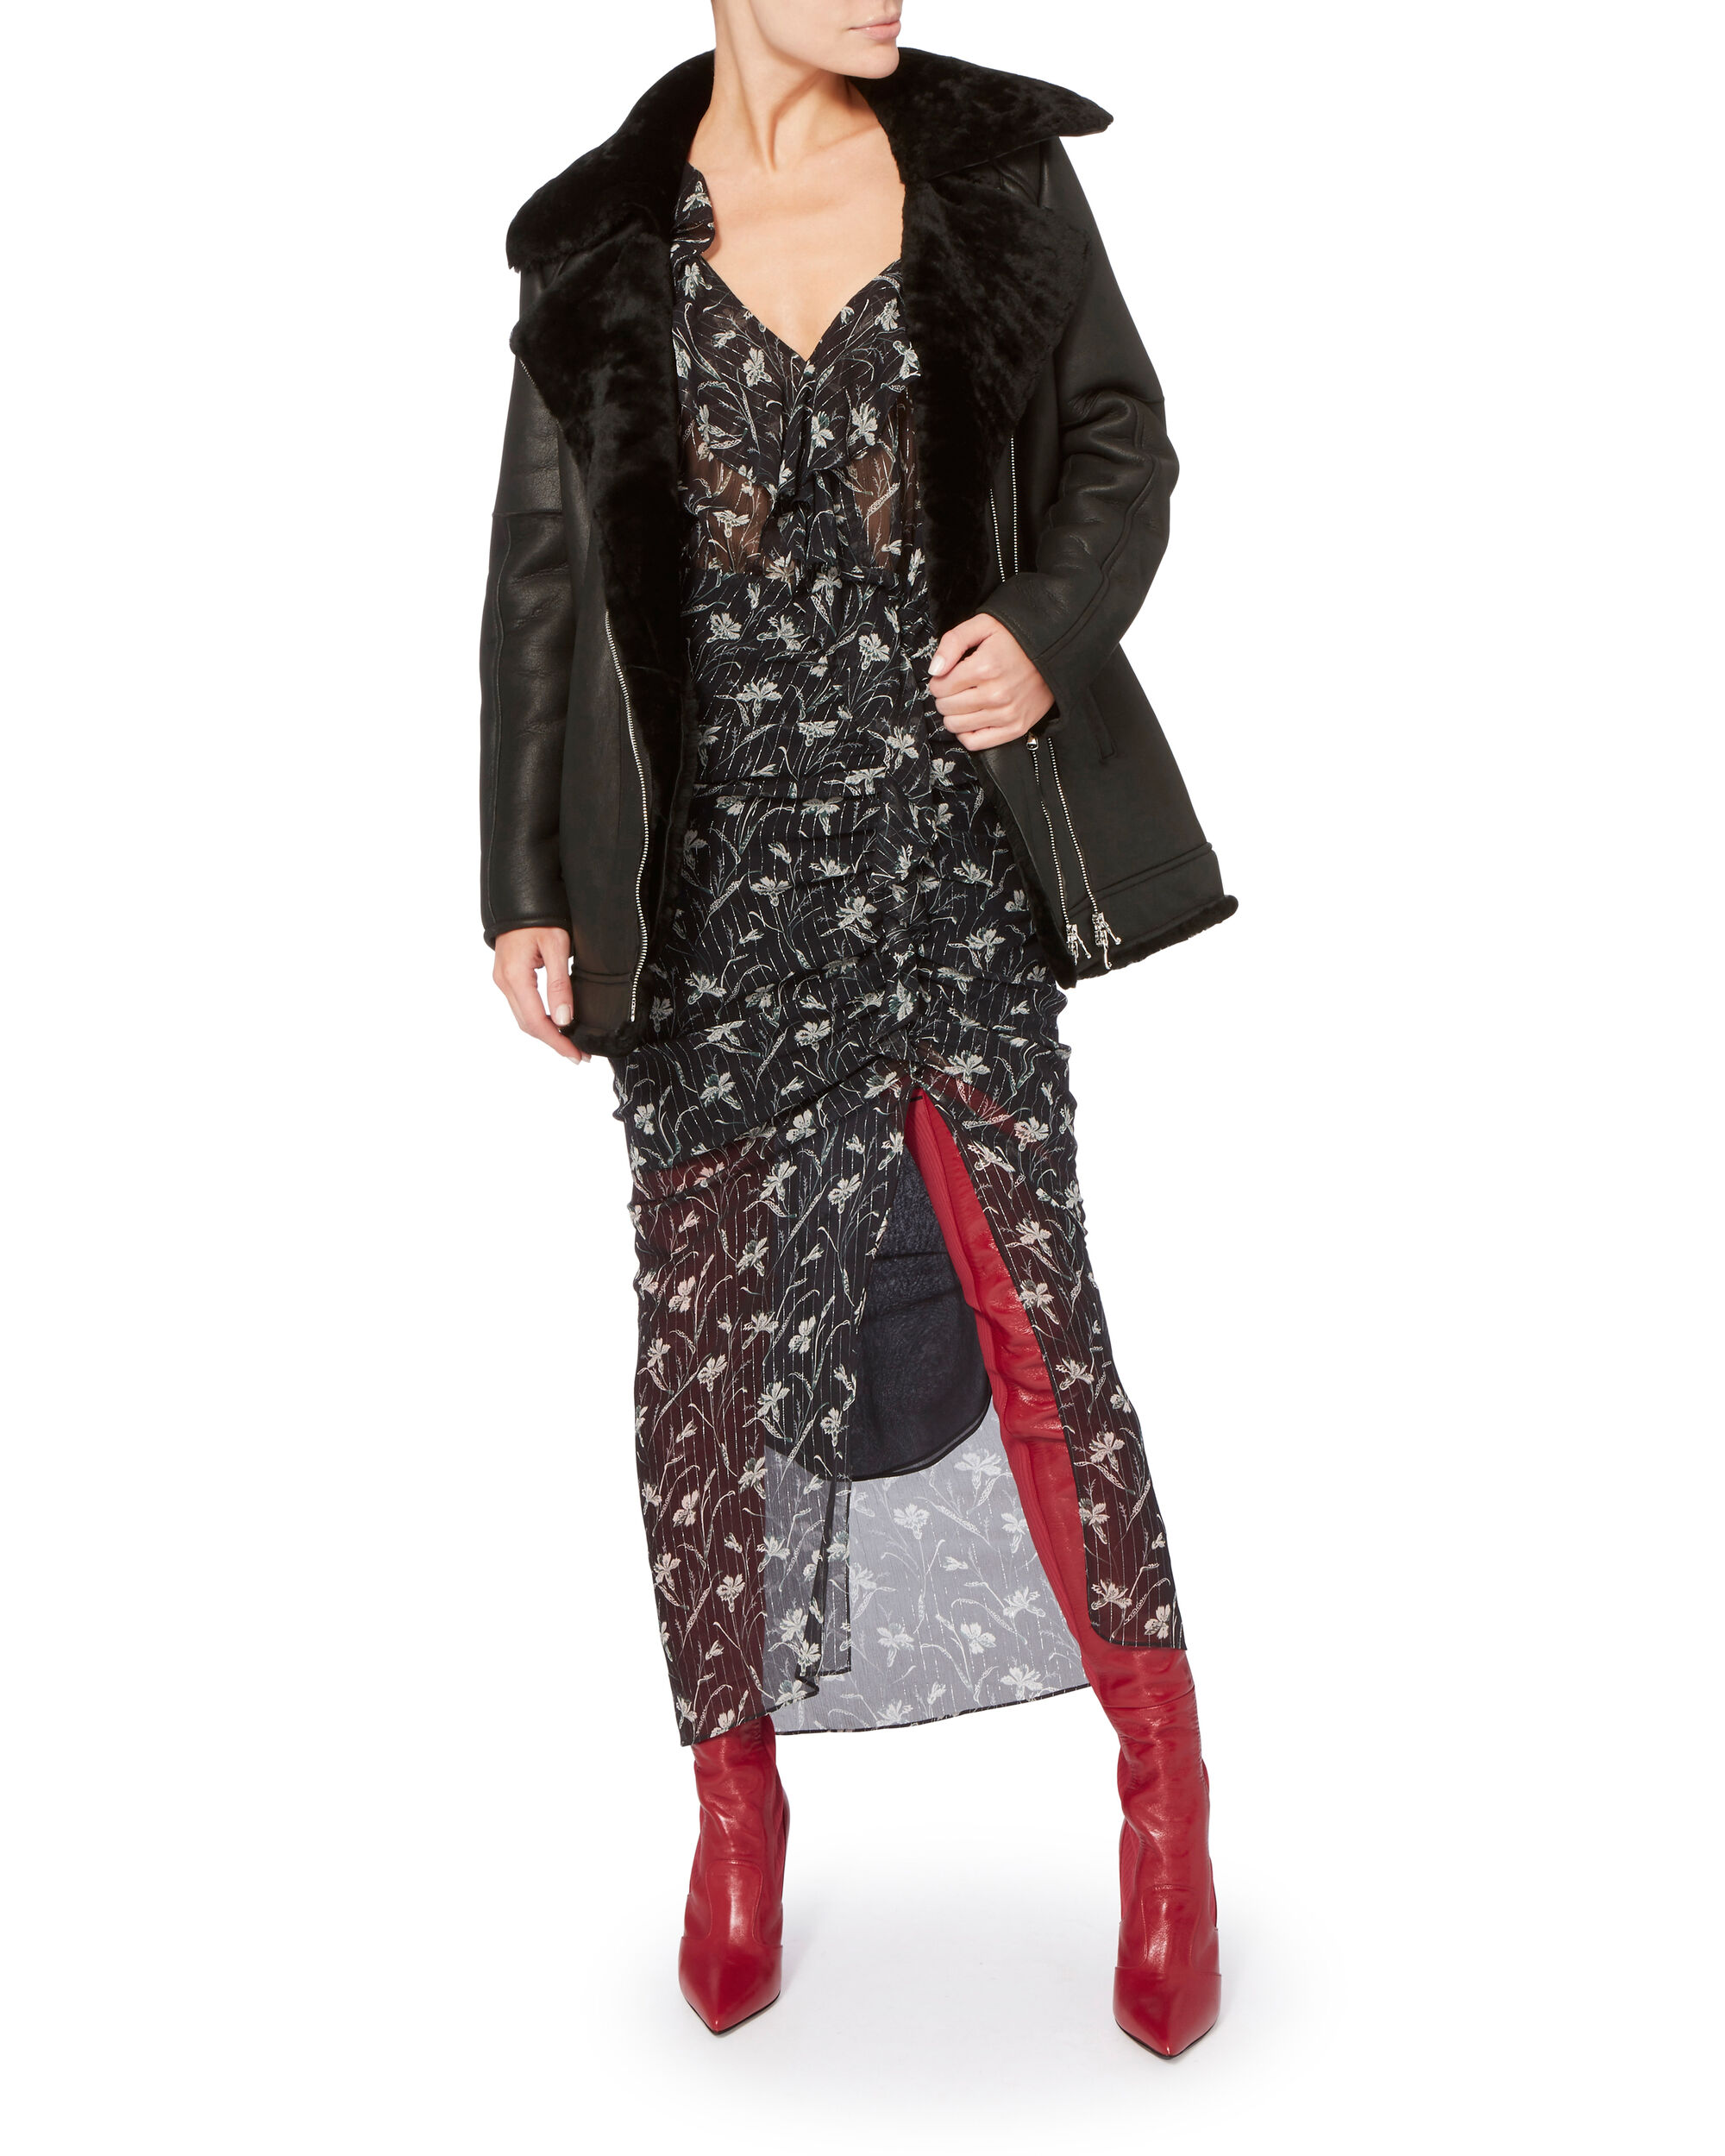 Rockoko Red Leather Over-The-Knee Boots, RED, hi-res